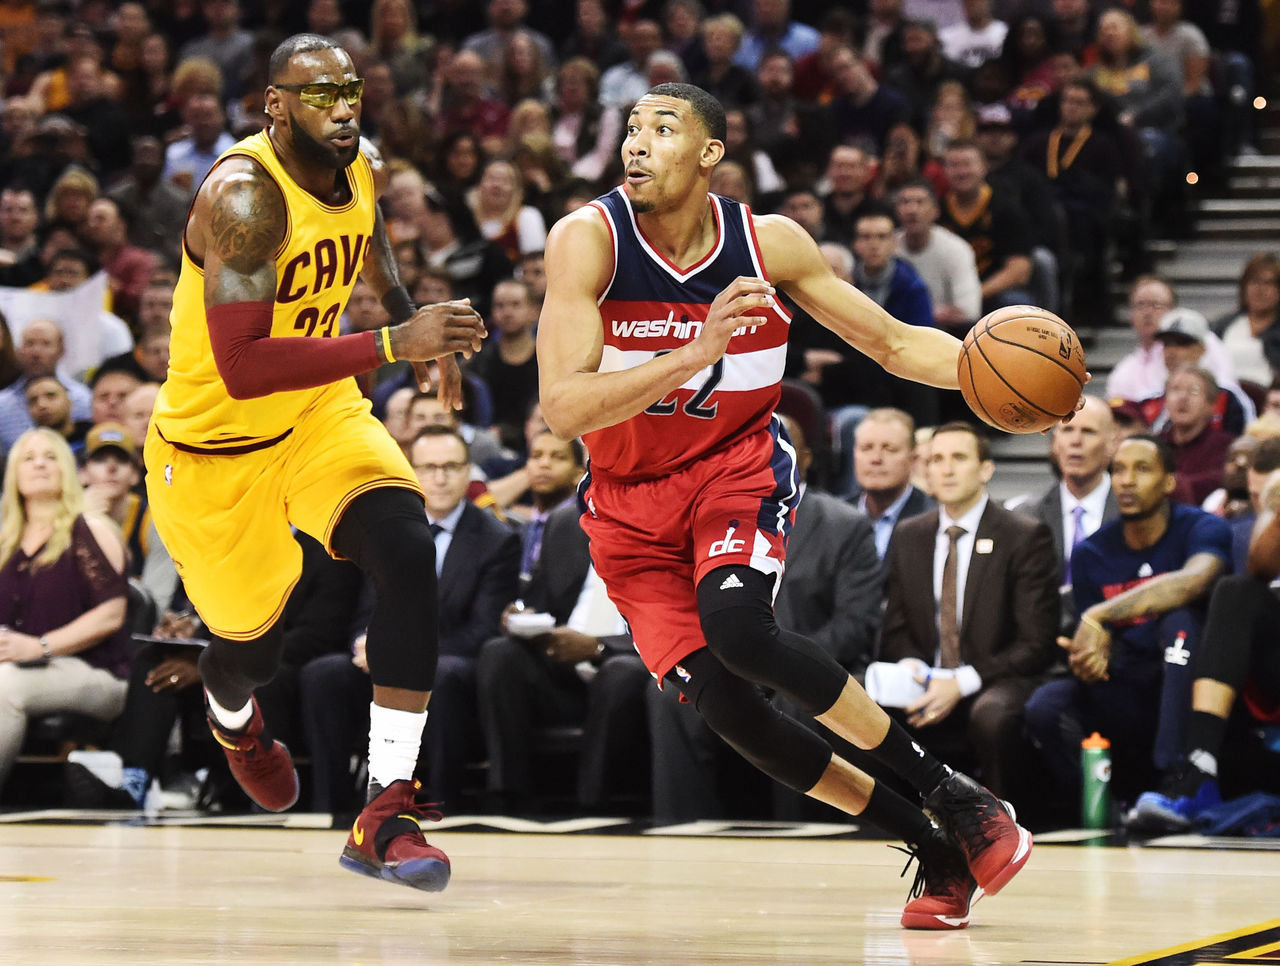 Cropped 2017 03 26t004948z 1093719272 nocid rtrmadp 3 nba washington wizards at cleveland cavaliers